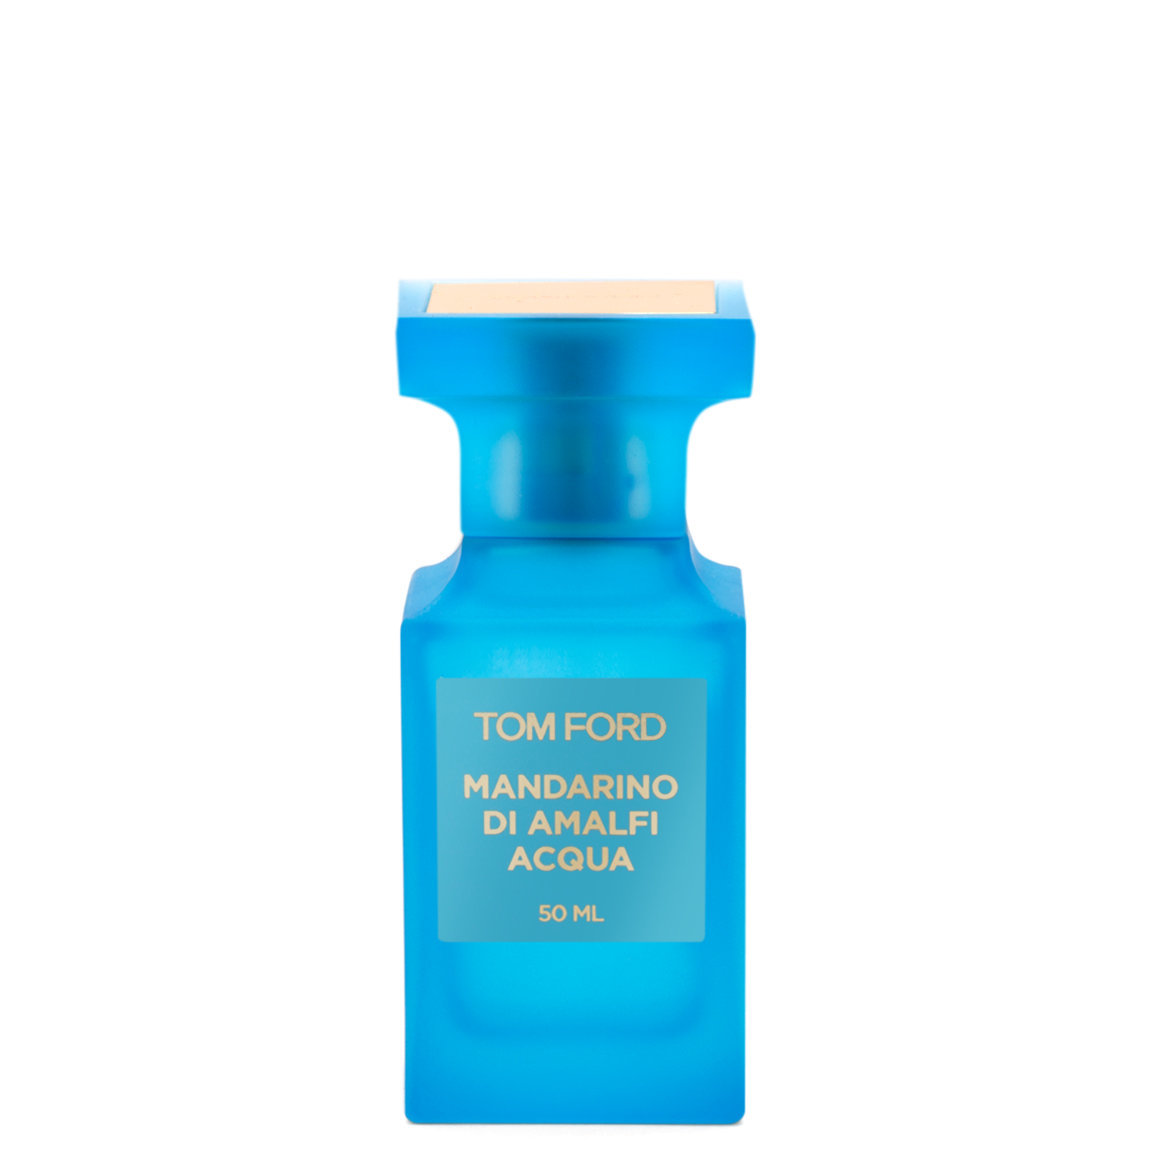 TOM FORD Mandarino di Amalfi Acqua 50 ml